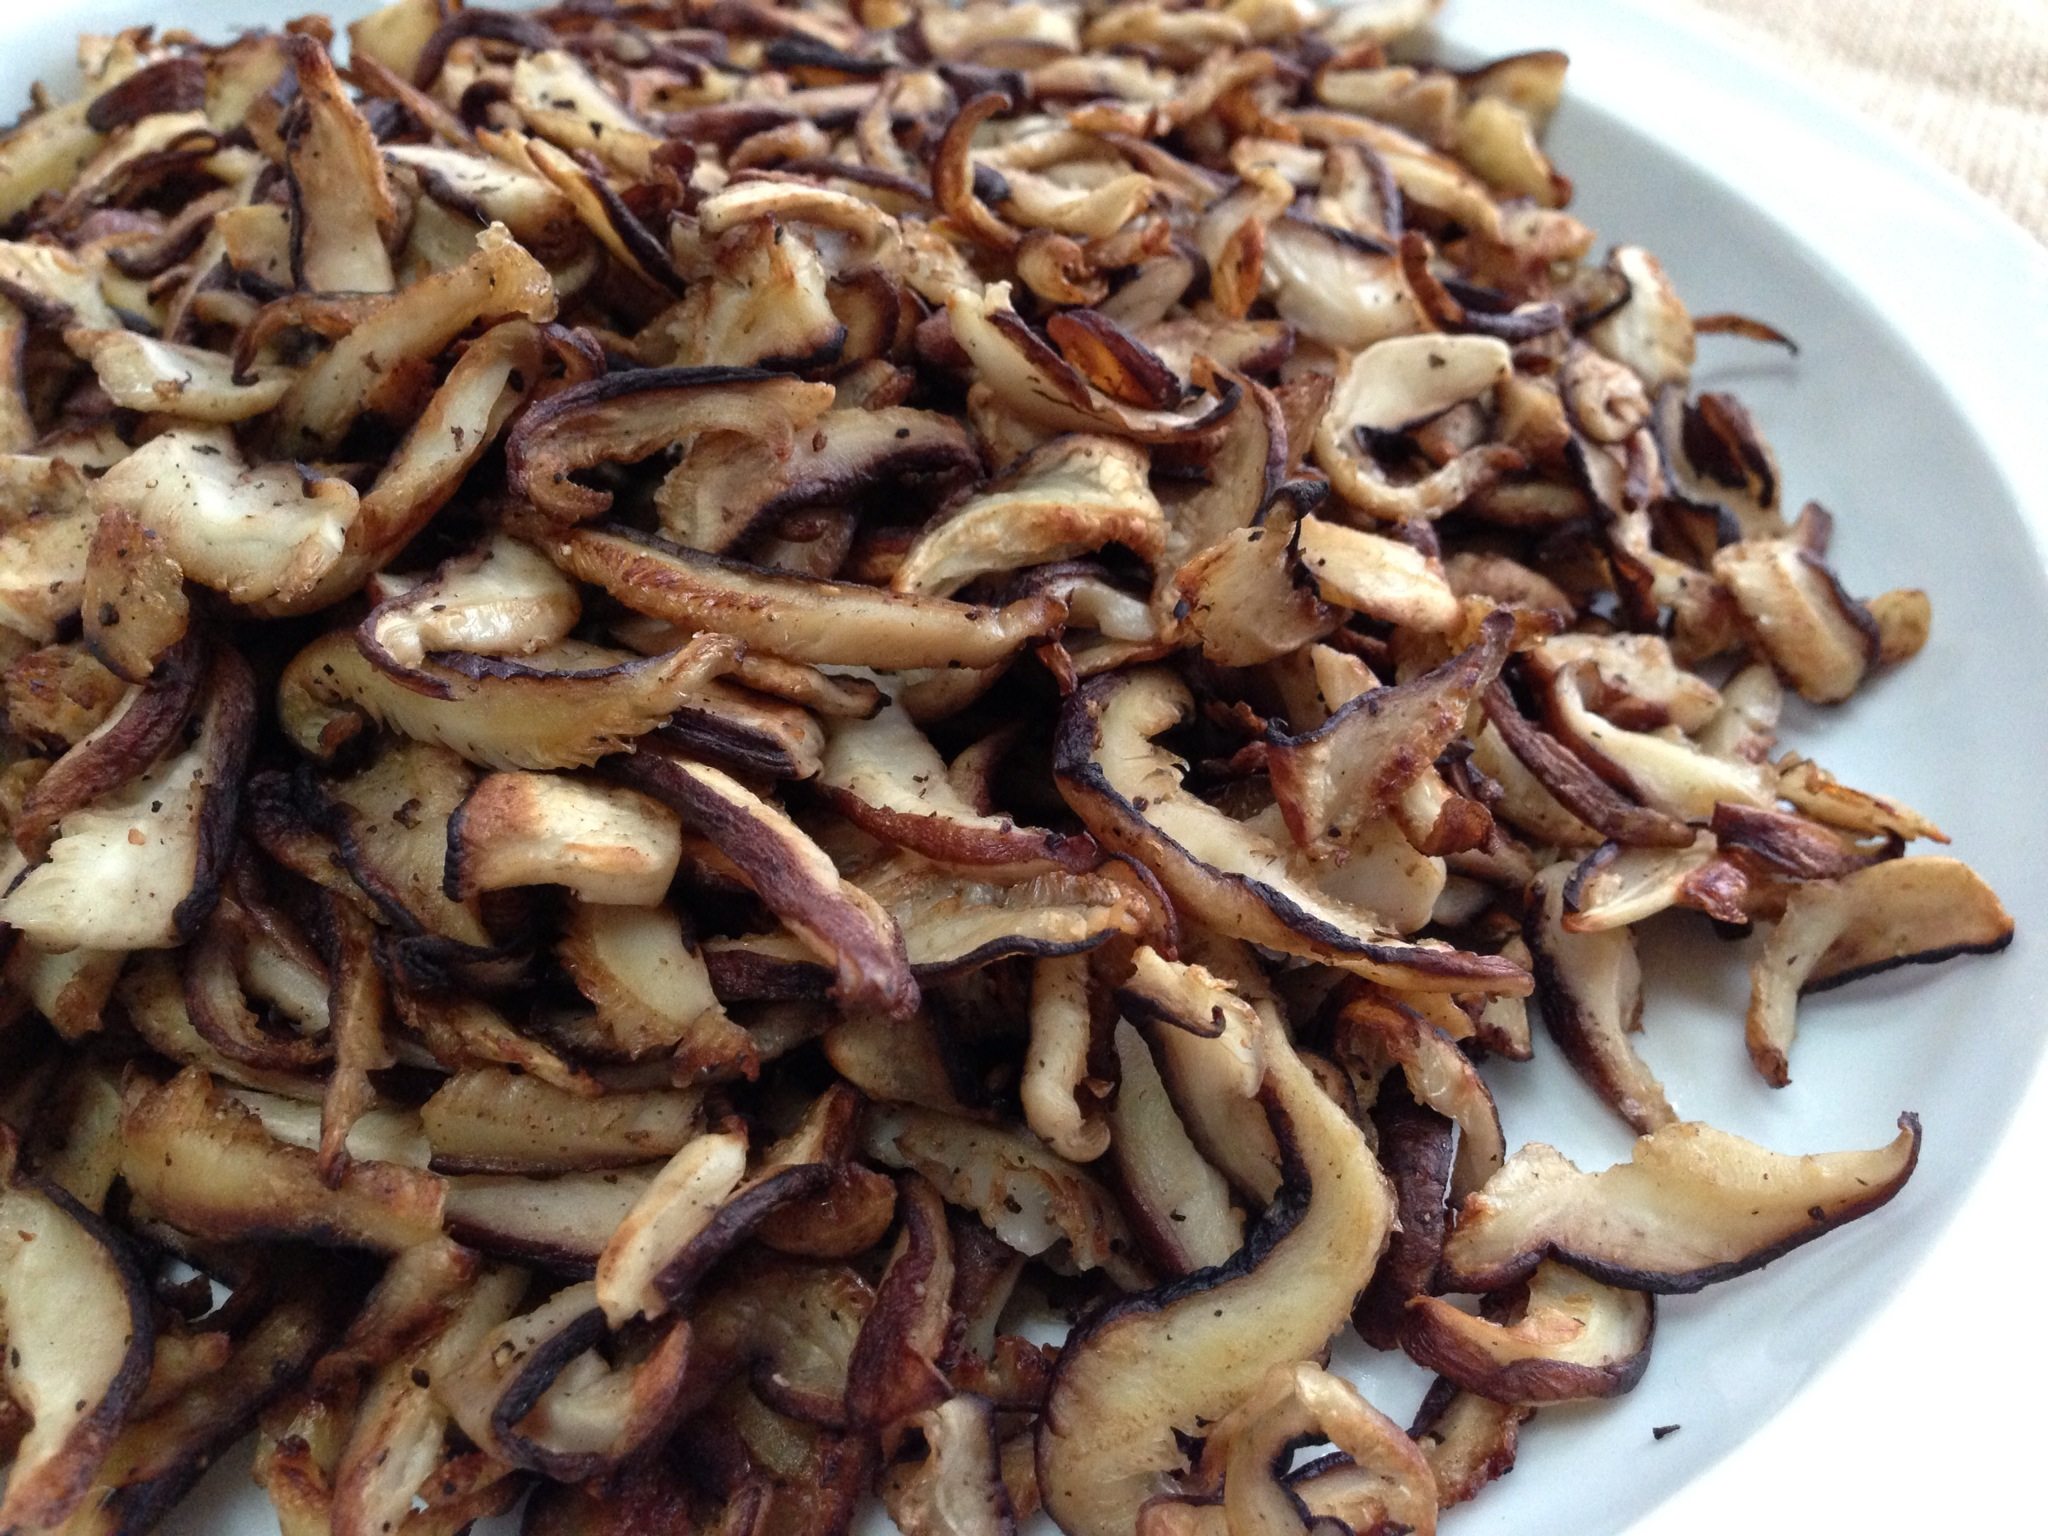 How to Prepare Shiitake Mushrooms